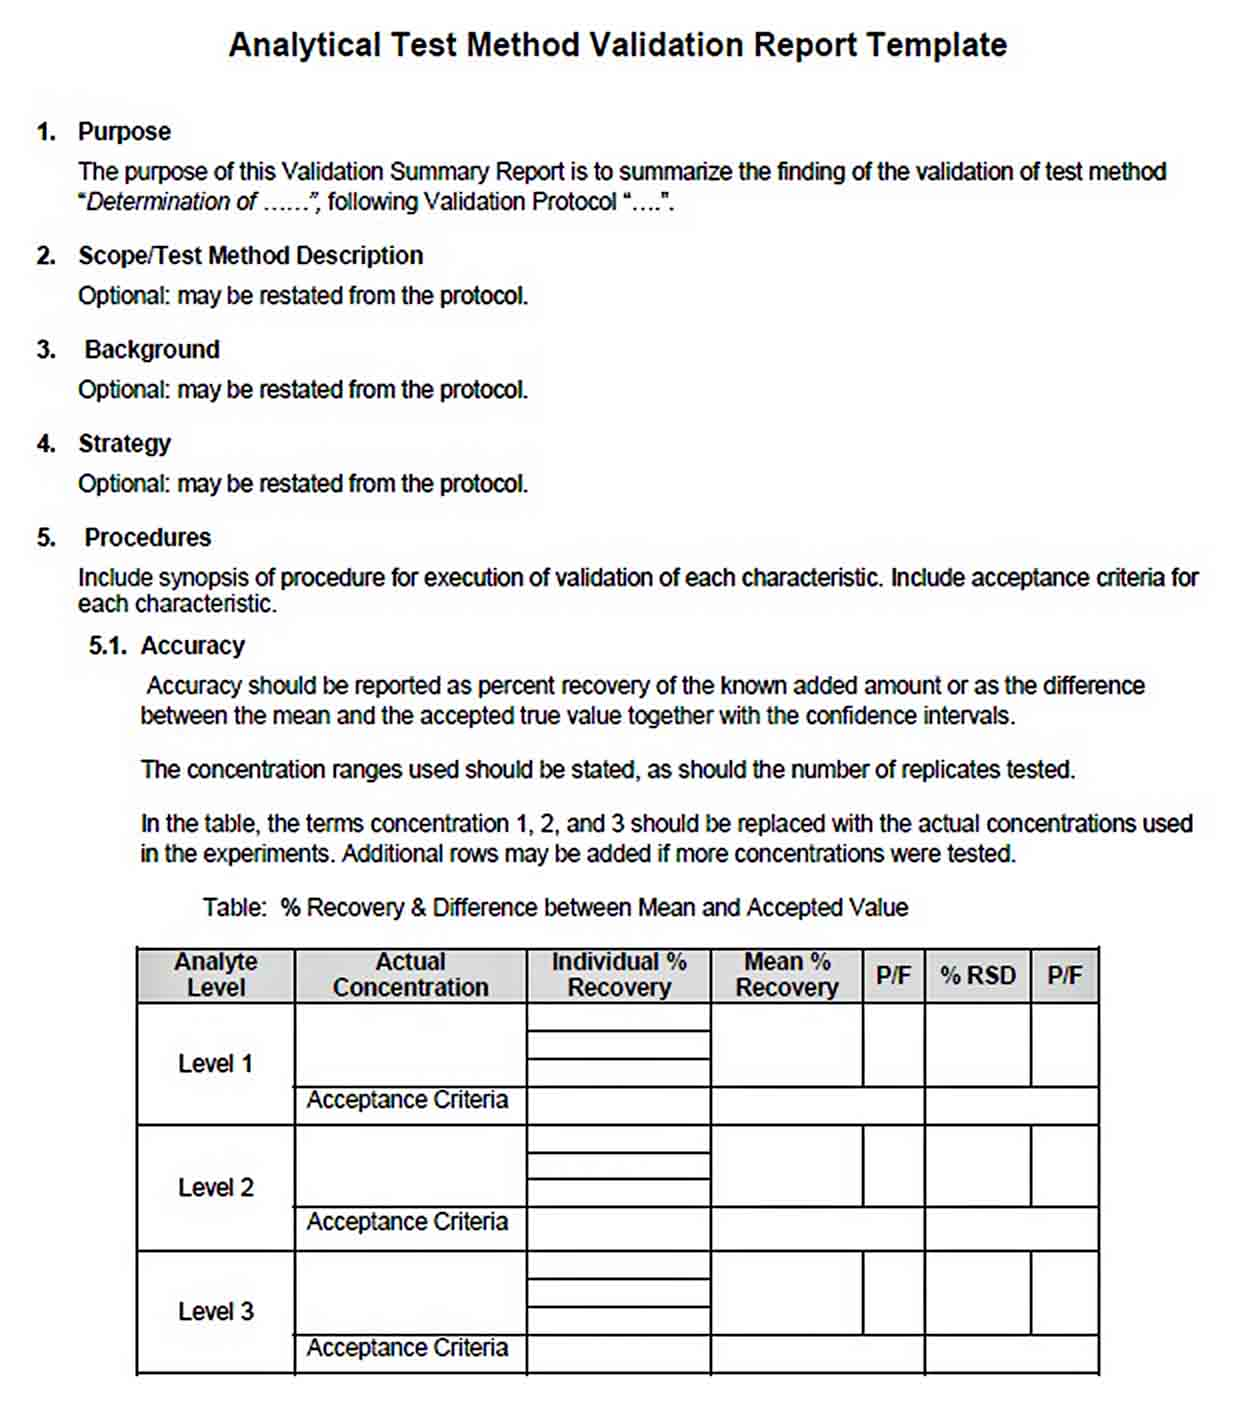 Templates Analytical Test Method